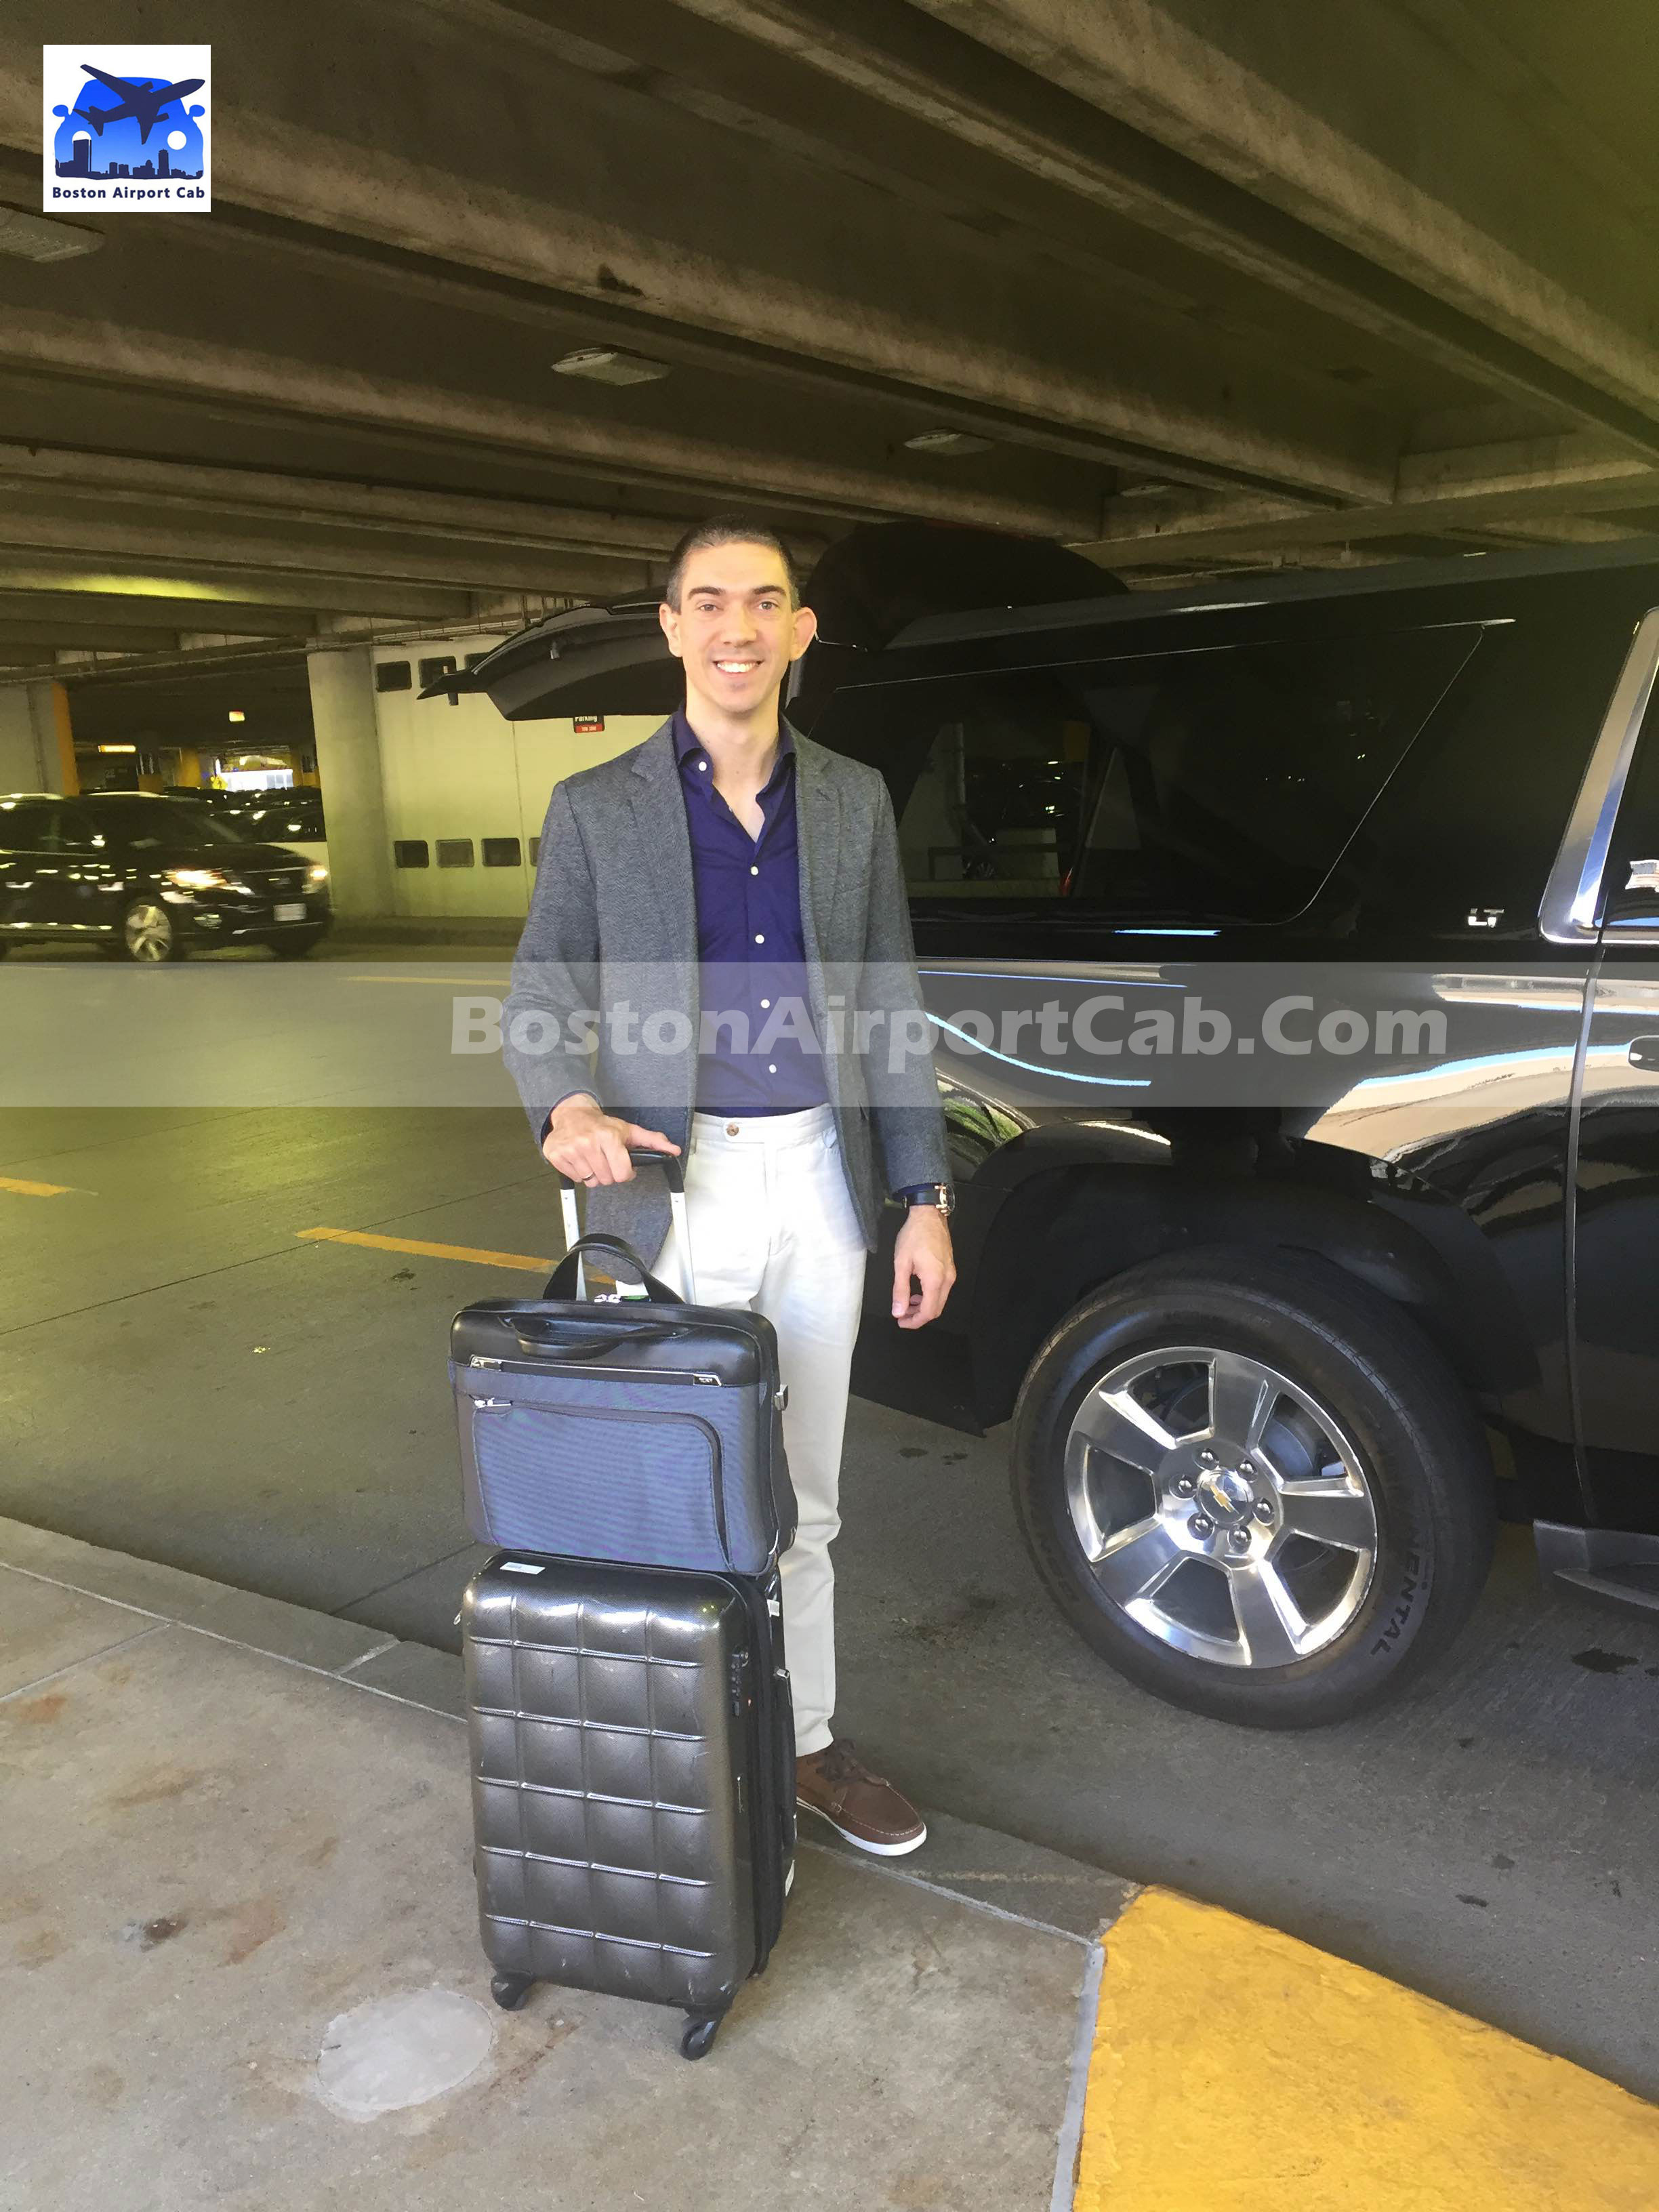 Satisfied Client With Our Airport Taxi Service Boston